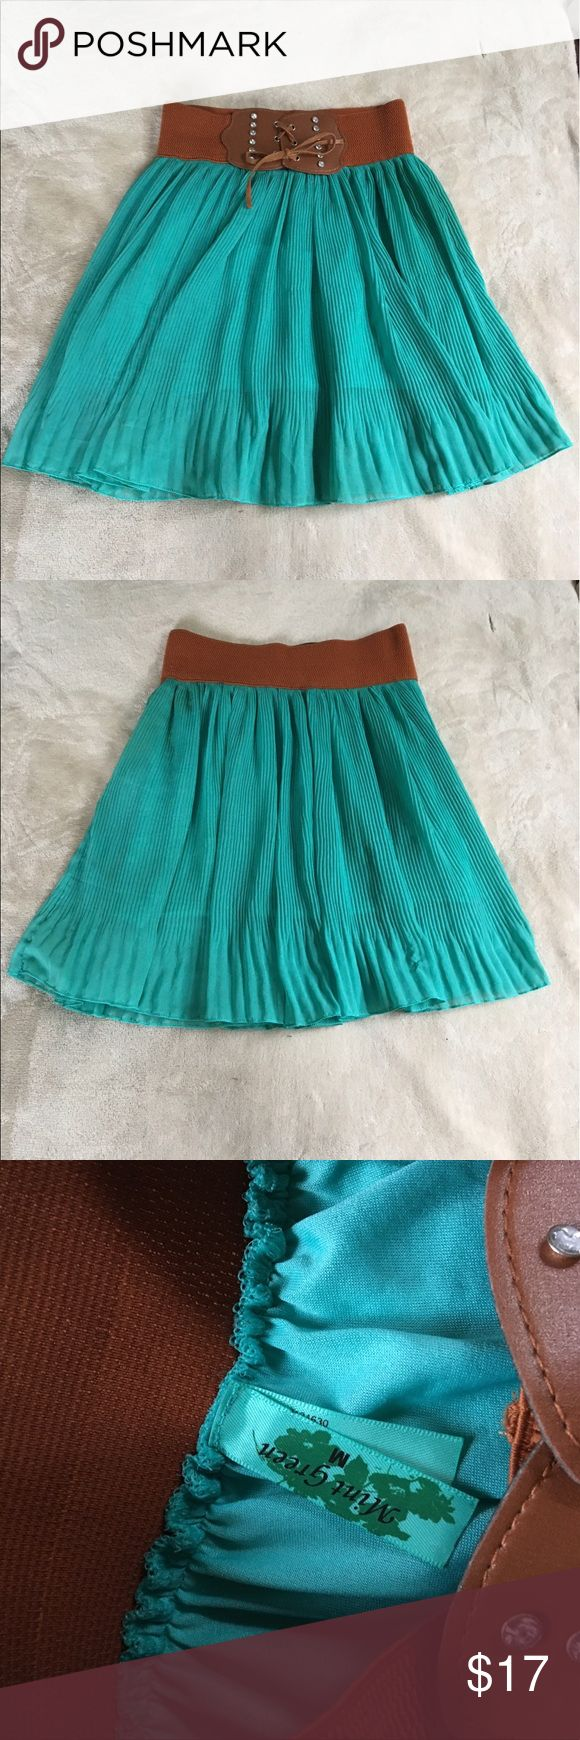 Mint Green Sheer Skirt Mint Green brand size medium skirt with brown elastic waist band ties in front to look like a belt slip underneath is shorter than the overlay. Waist is 24 inches(not stretched) length of underneath is 14 inches length of overlay is 18 inches. 100% polyester. In excellent condition. mint green Skirts Midi